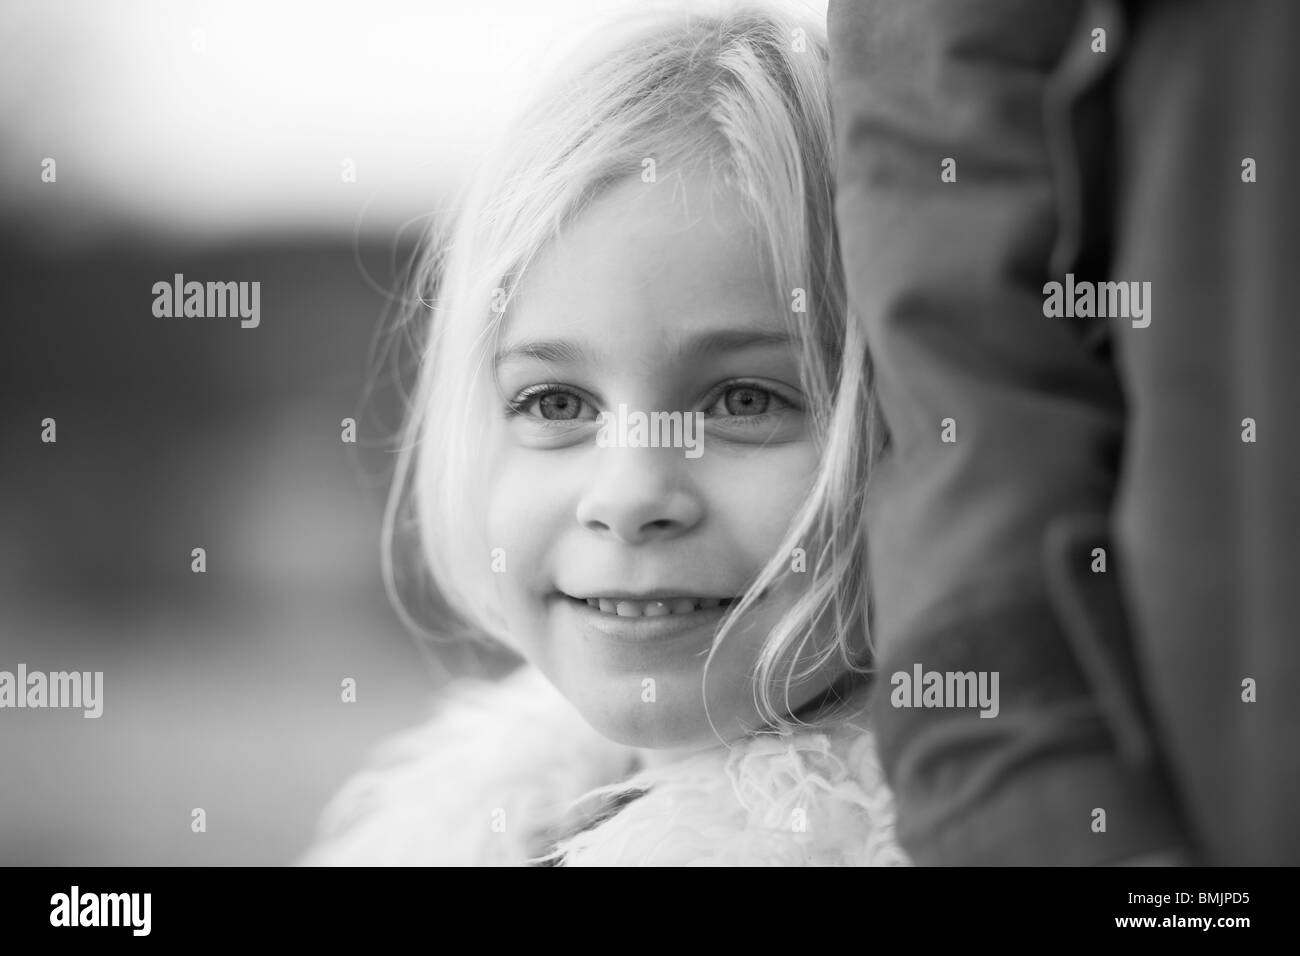 Scandinavia, Sweden, Vastergotland, Girl standing with father, smiling, close-up - Stock Image